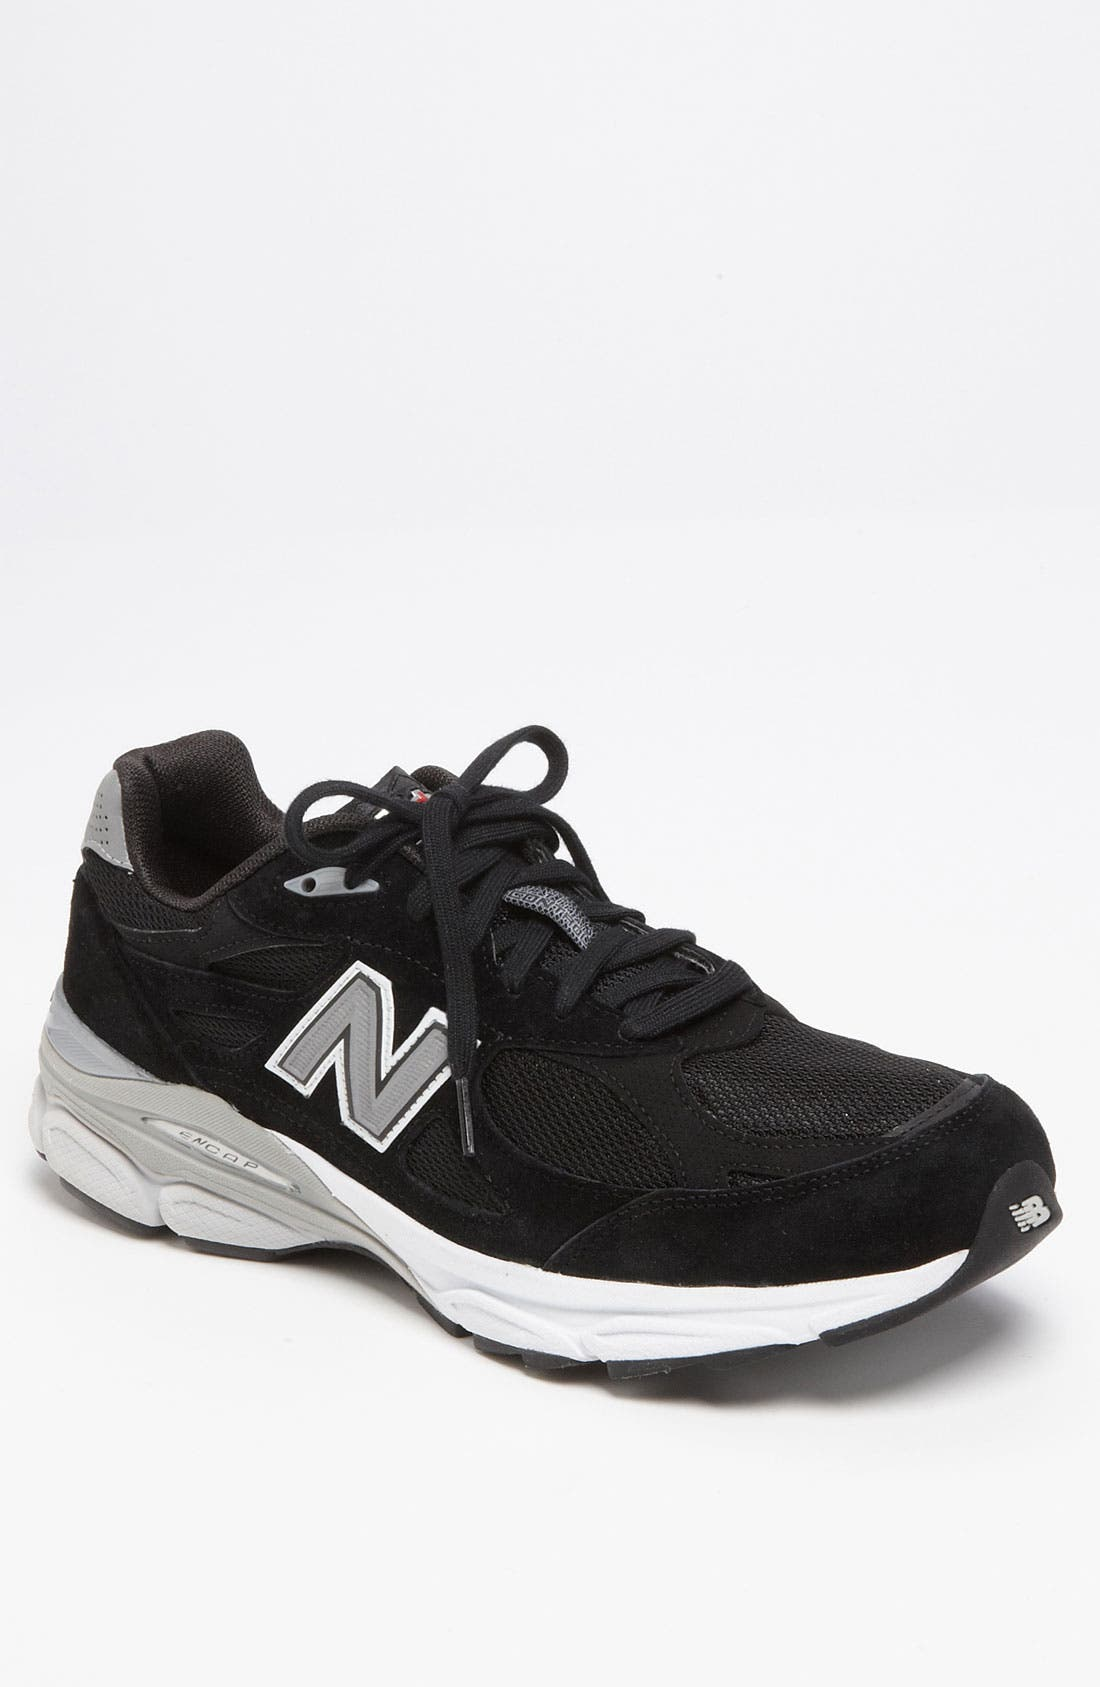 Alternate Image 1 Selected - New Balance '990' Running Shoe (Men)